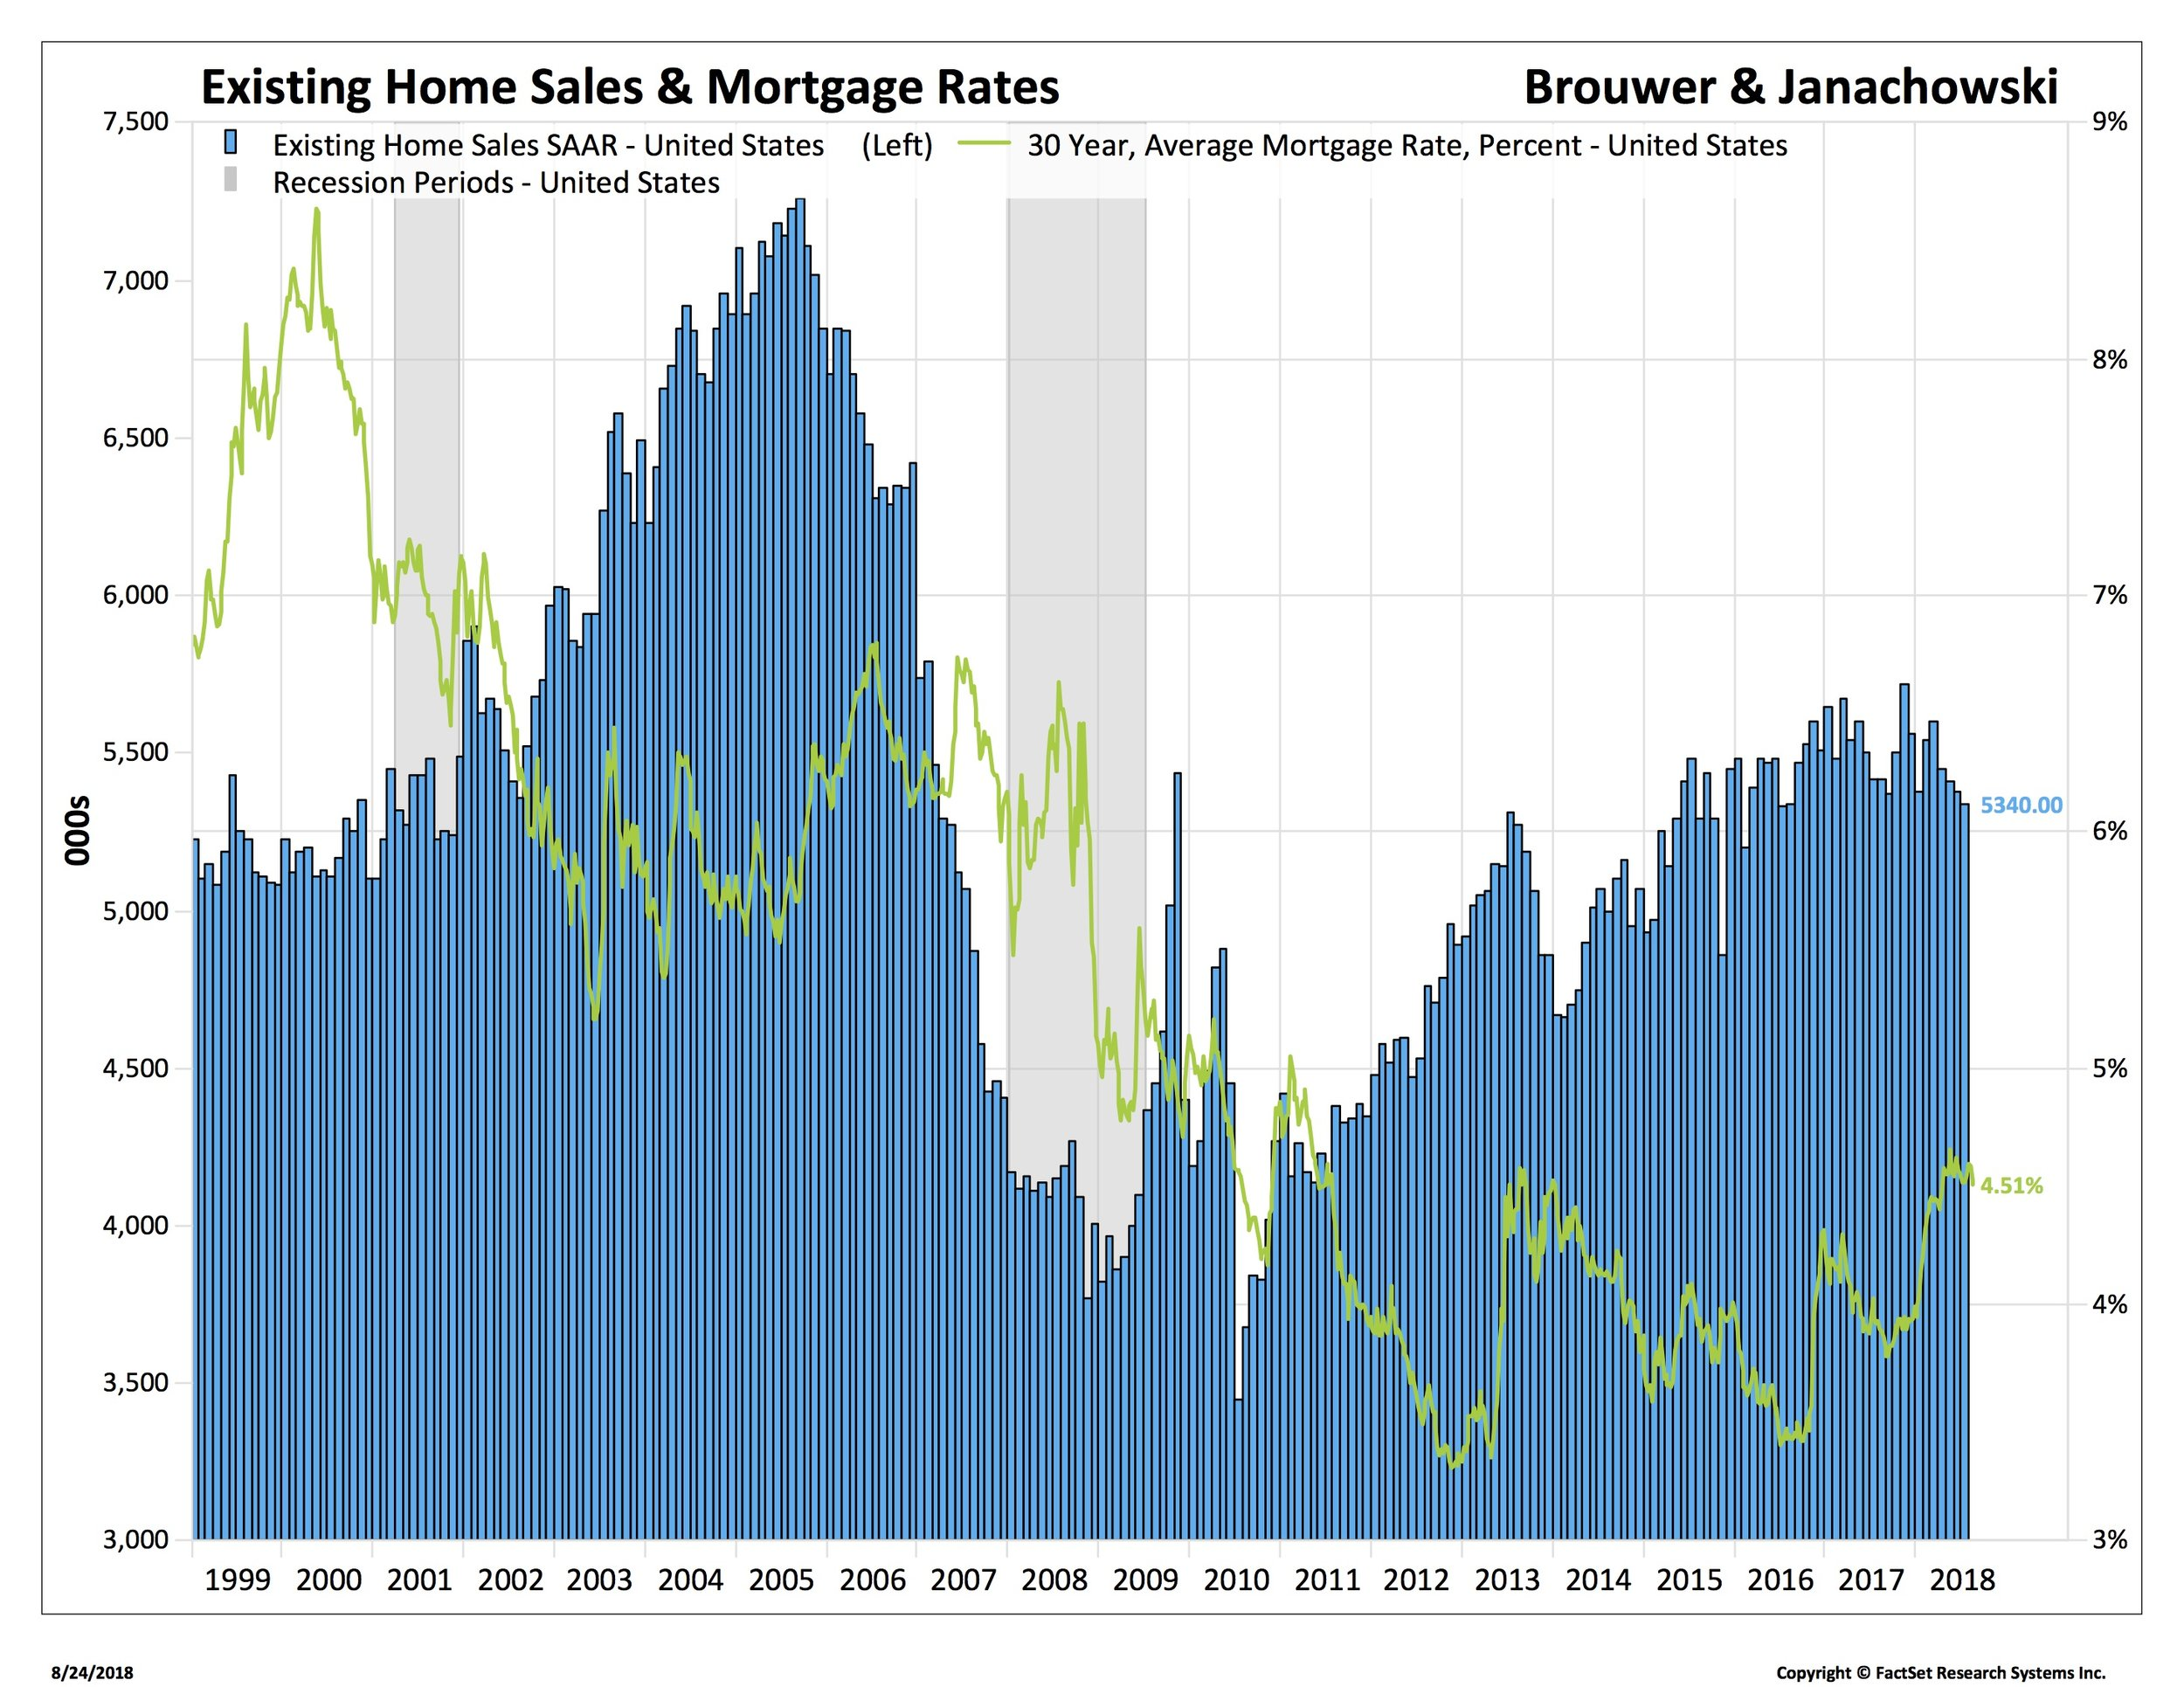 3 US - Existing Home Sales SAAR_BKI-USA.jpg